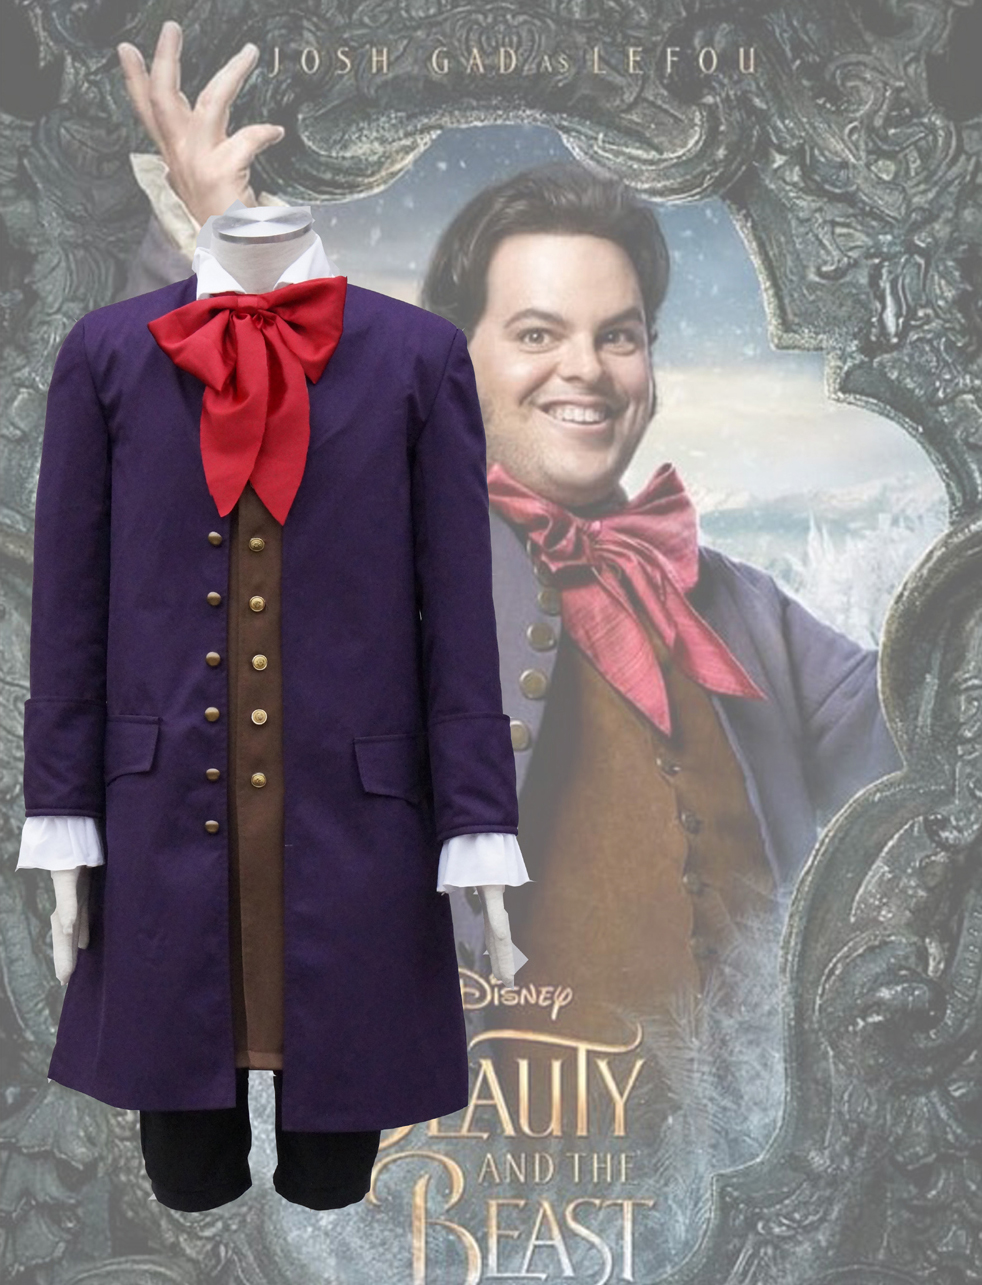 2017 Movie Beauty and The Beast Le Fou Costume Men Cosplay Suit Josh Gad outfits  any size/Custom-made